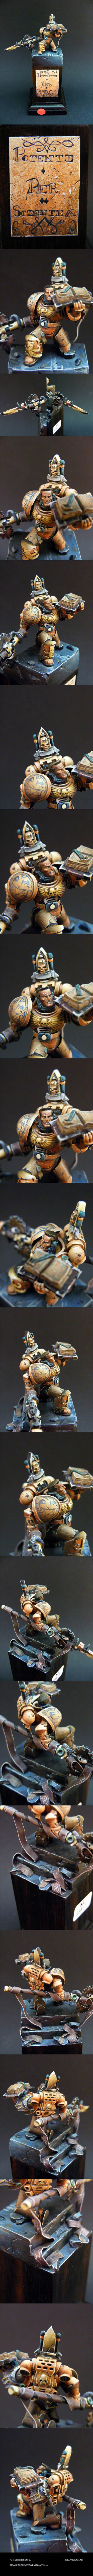 Space marine librarian POTENTI PER SCIENTIA